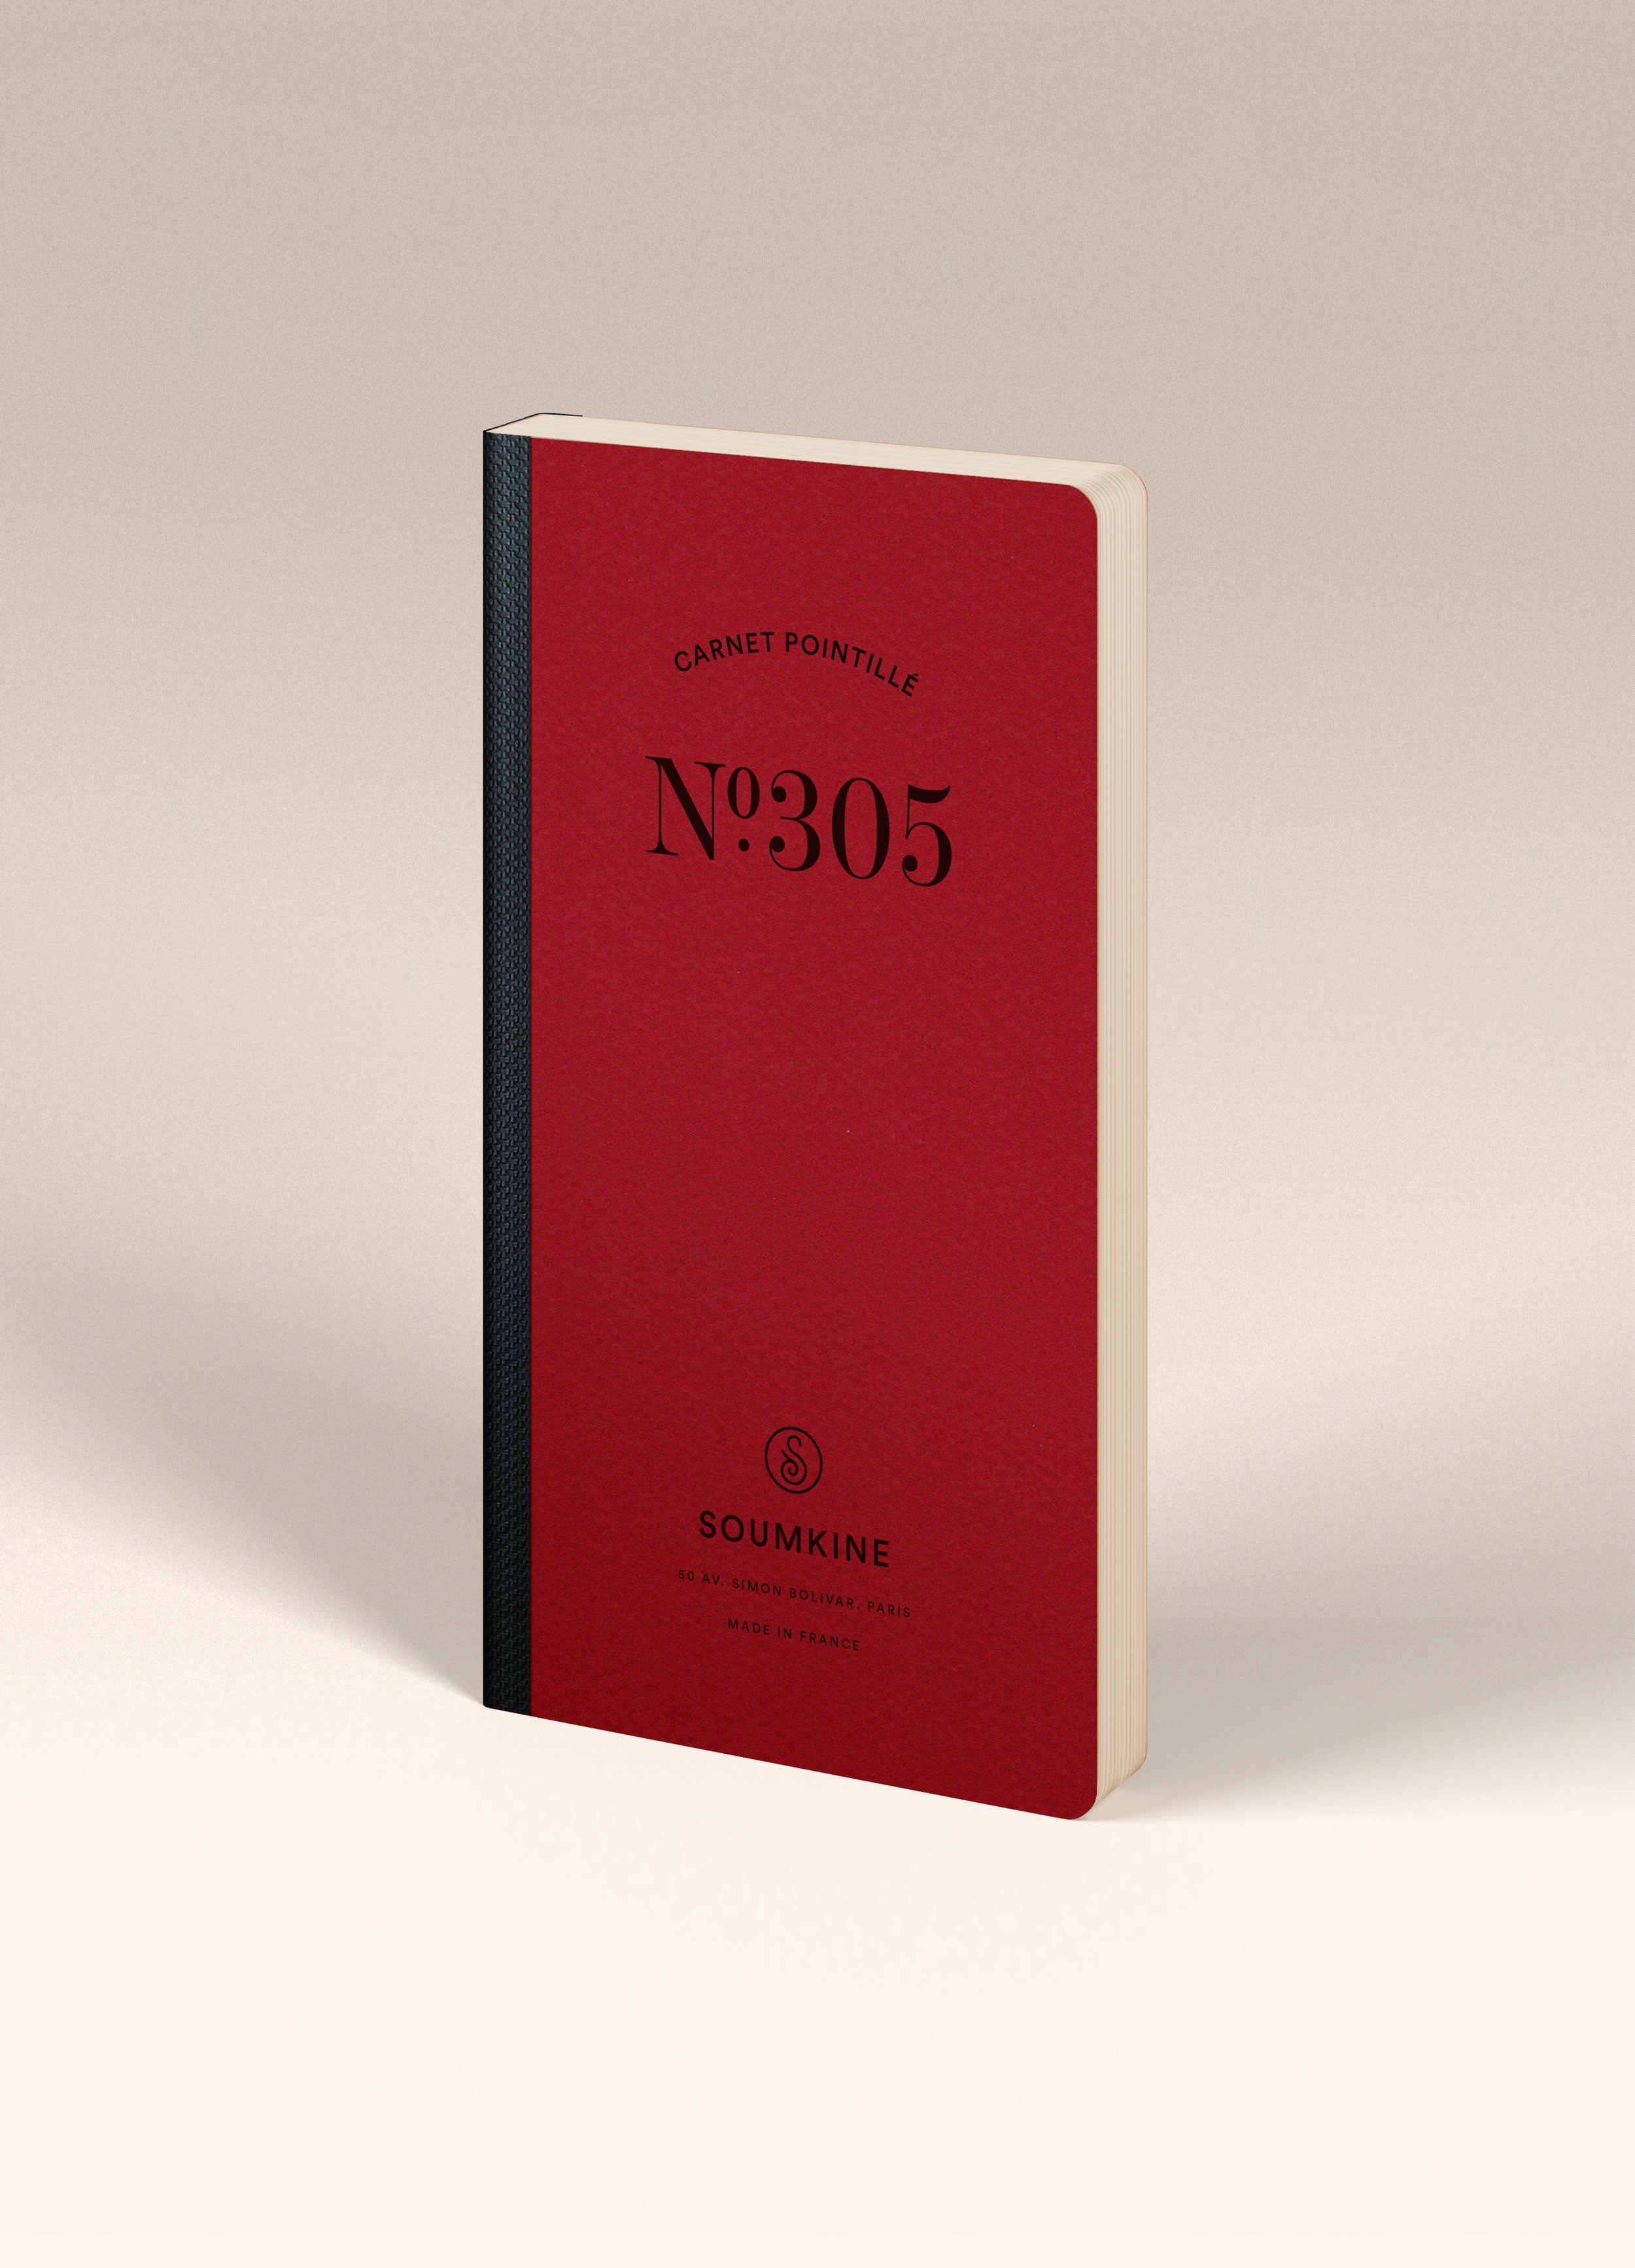 N.305 (DOTTED) Notebook. Slim / Traveler's notebook size